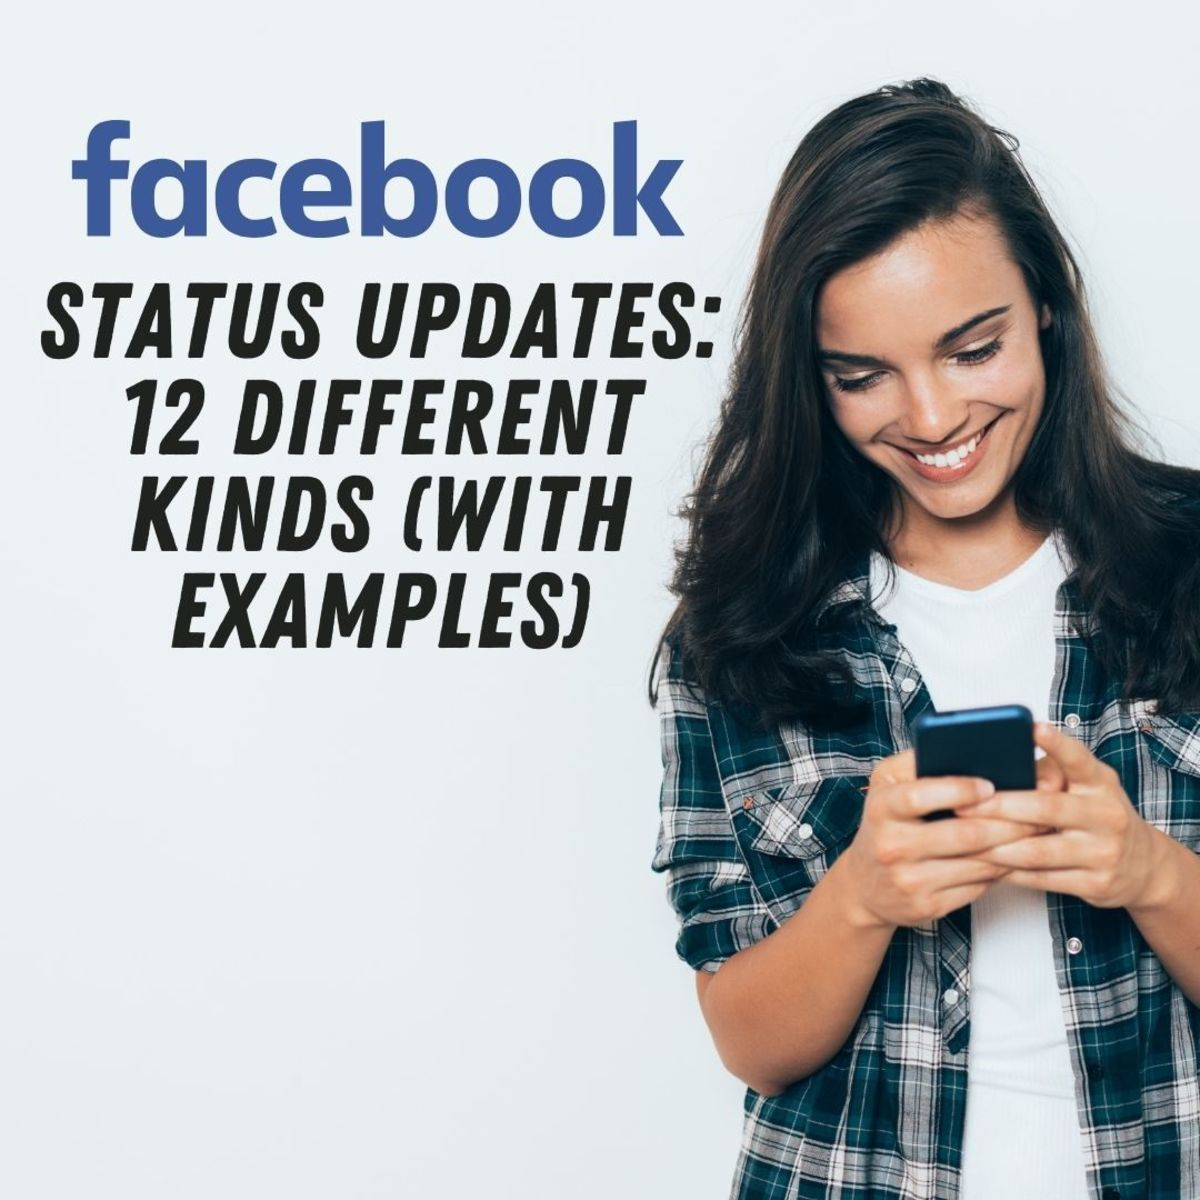 The 12 most common different types of status updates